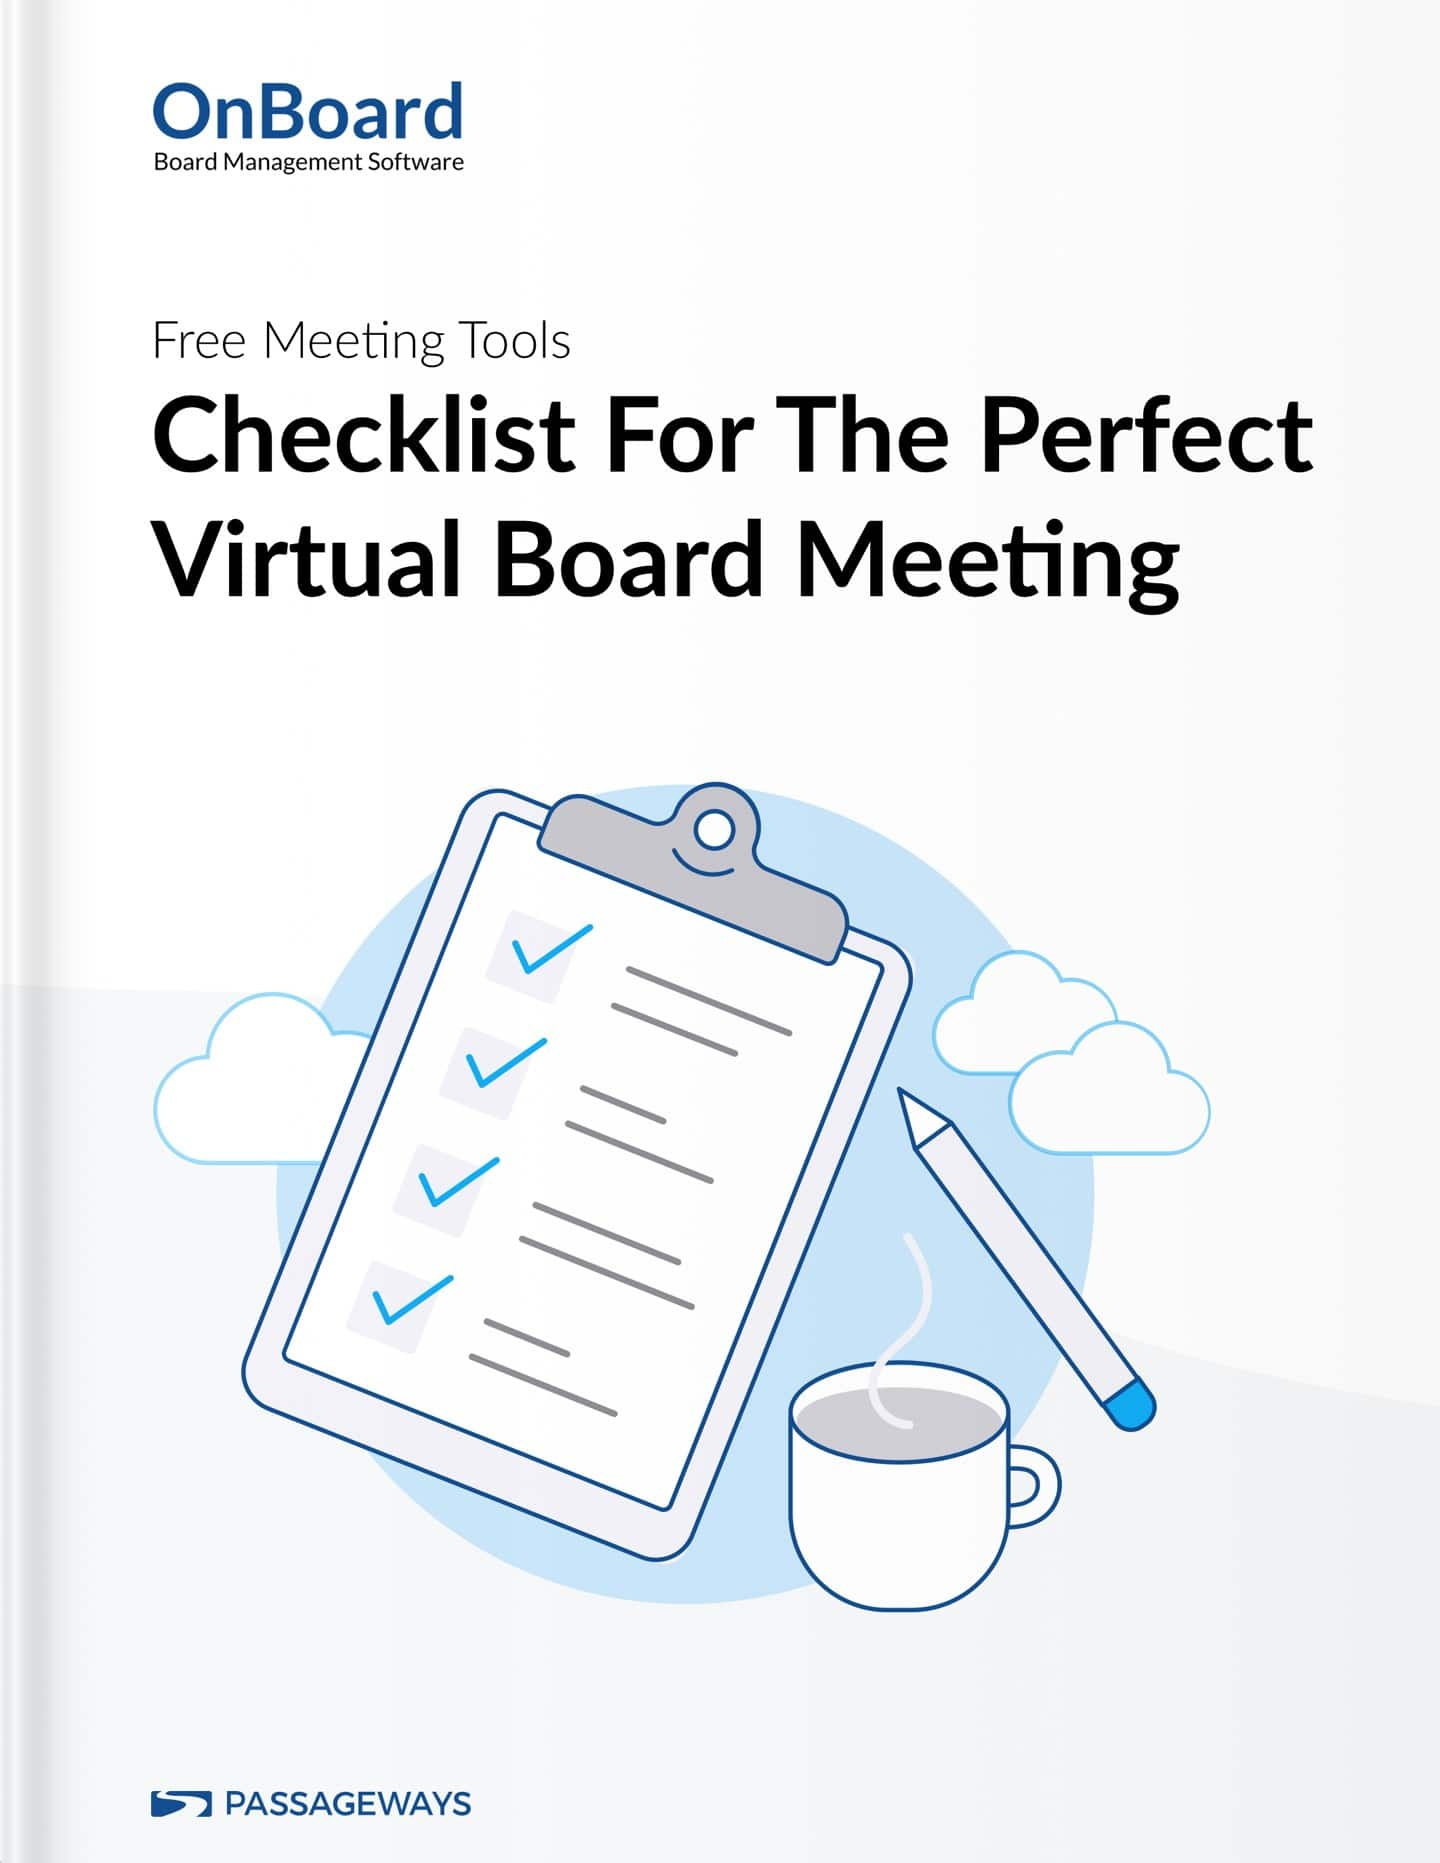 Checklist for Virtual Board Meetings